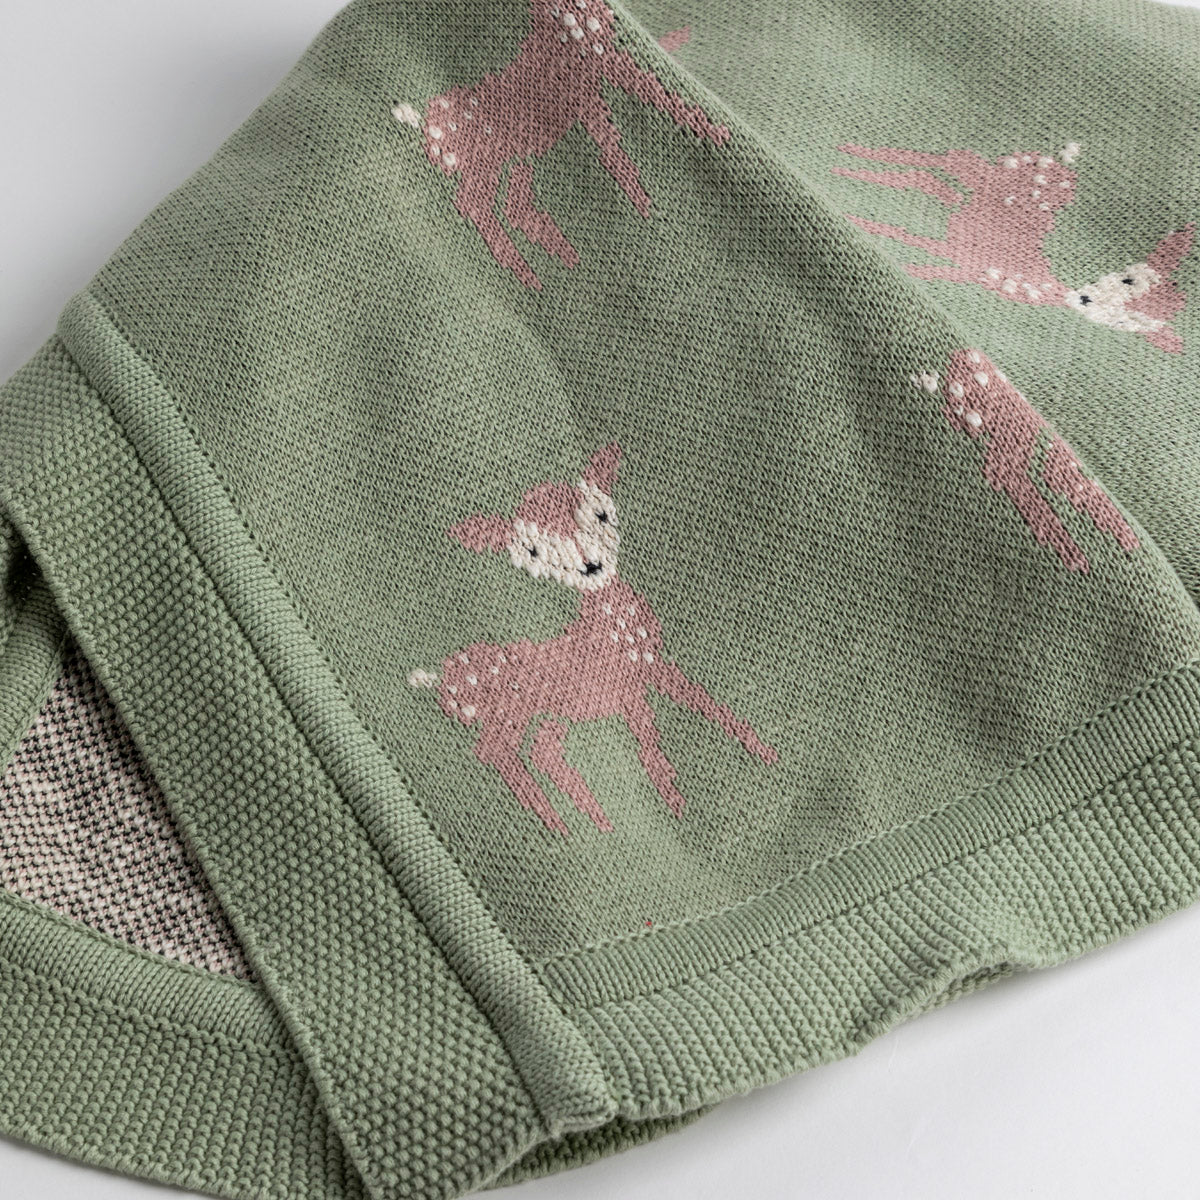 Cotton Knit Blanket Deer- Picnic SF